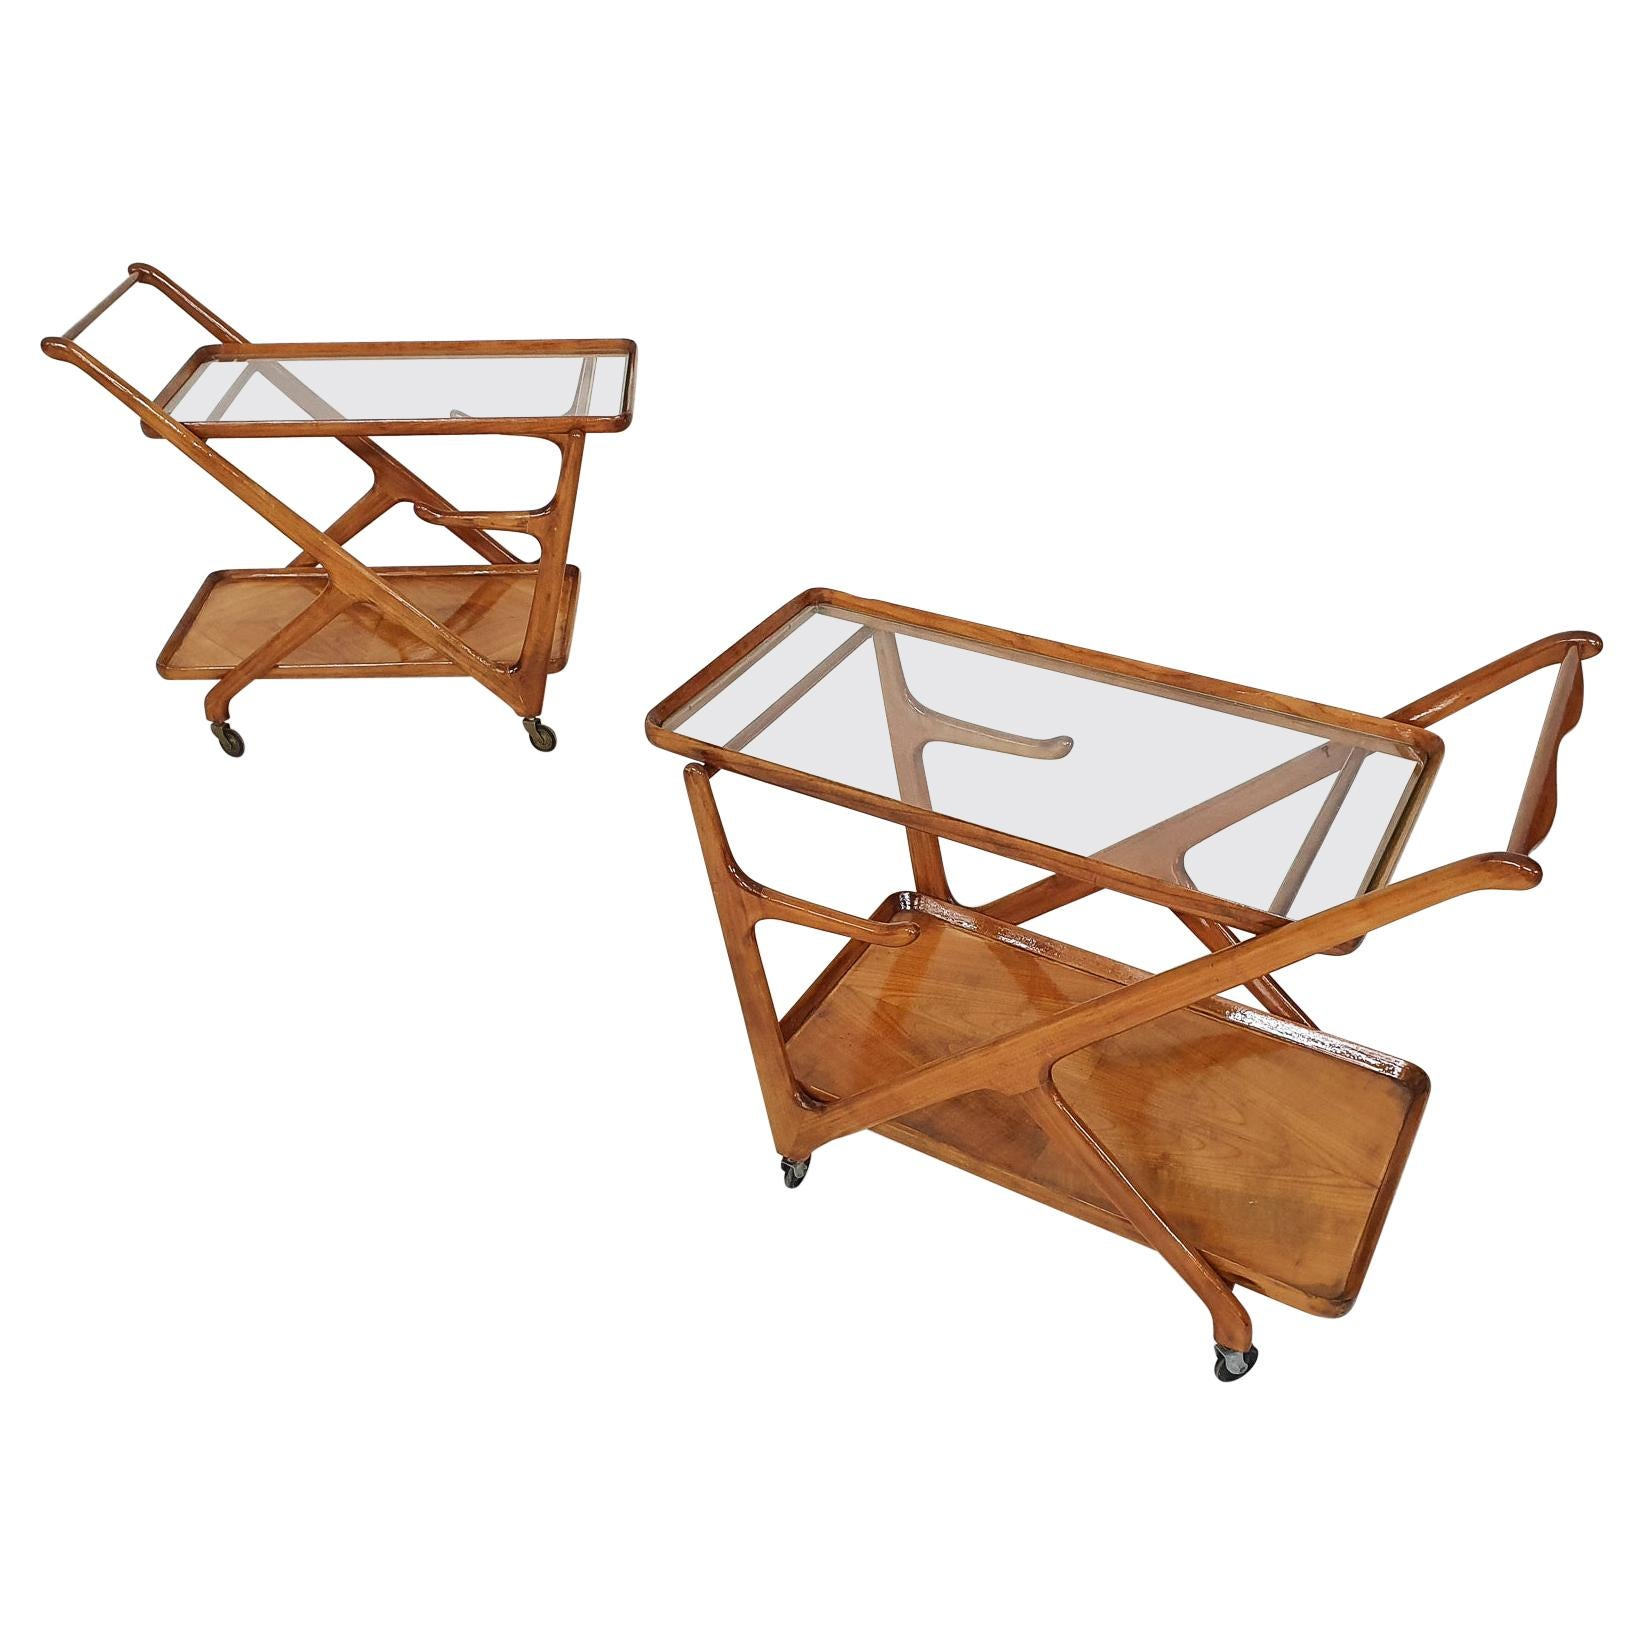 Cesare Lacca Trolleys and Bar Trolleys